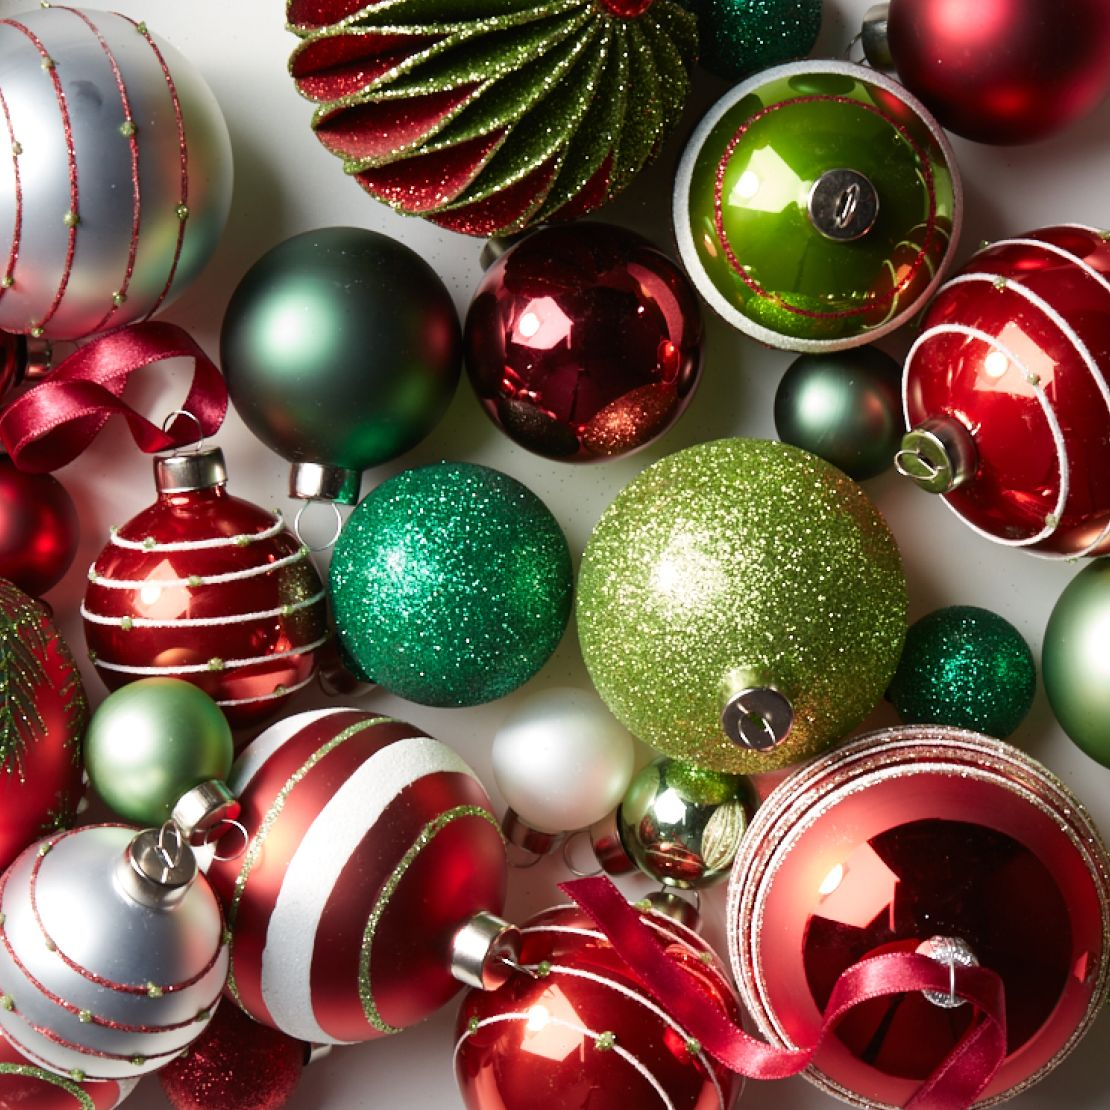 Decorated Christmas Balls: Christmas Decorations For Home And Tree